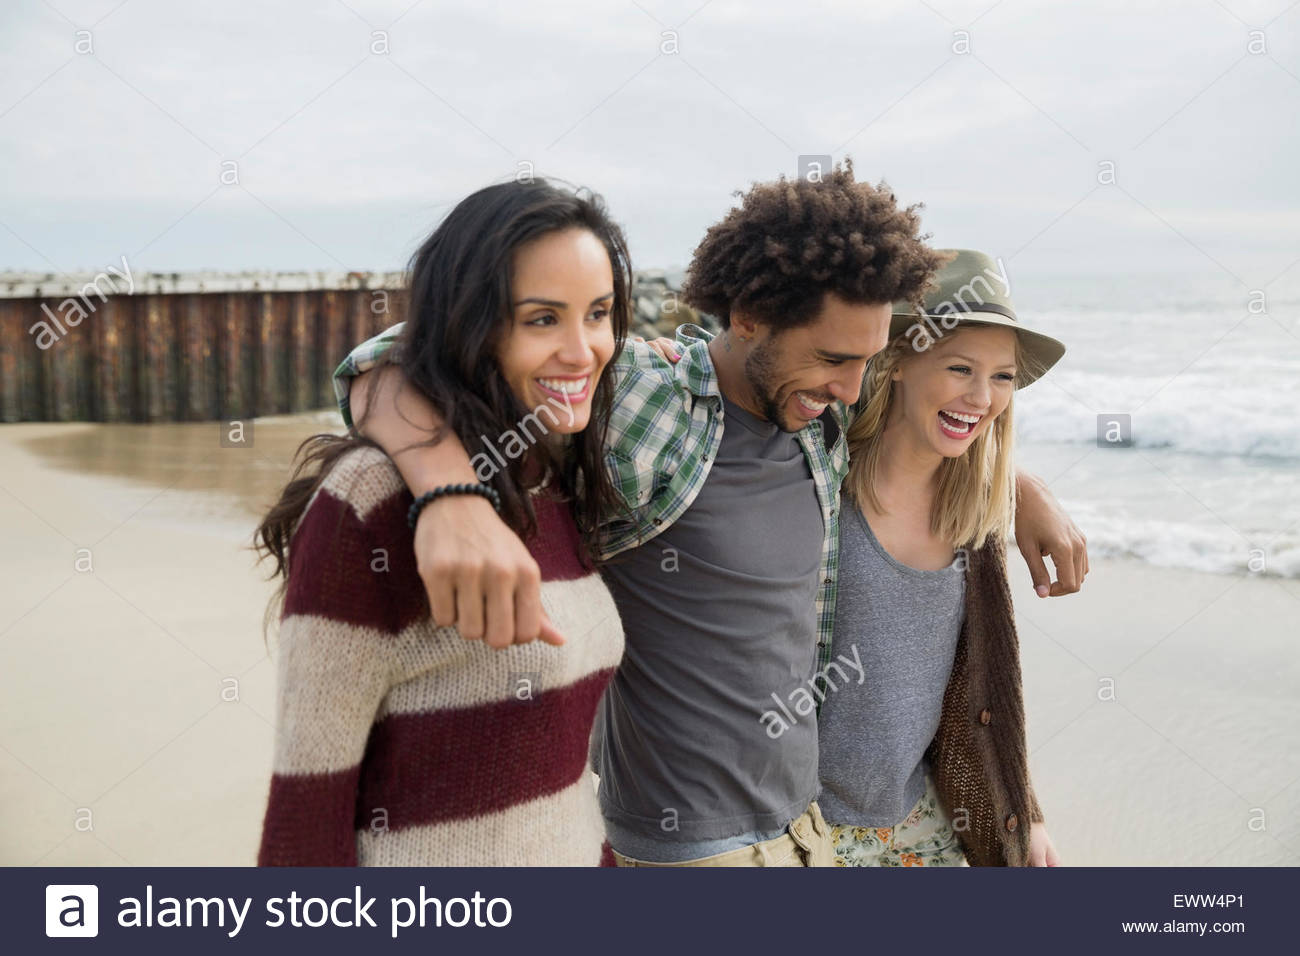 Smiling friends walking in a row on beach - Stock Image